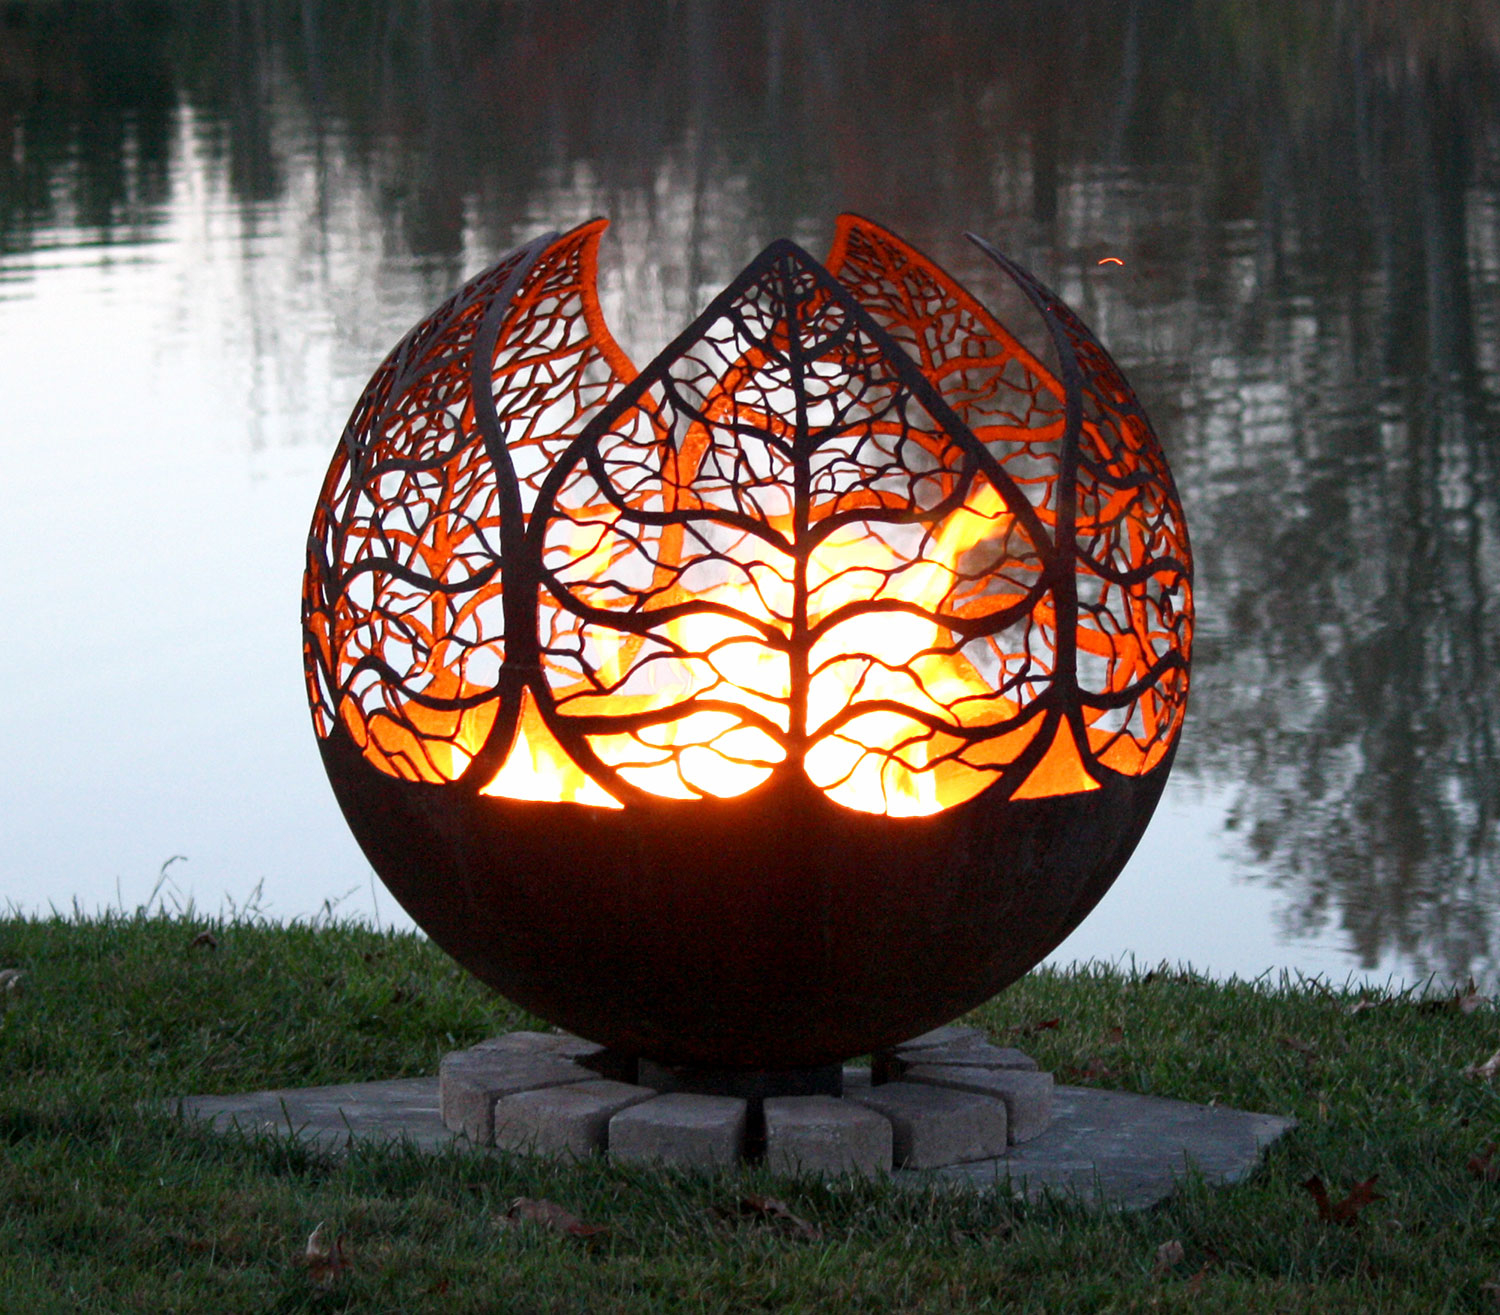 Autumn Sunset Leaf Fire Pit Sphere The Fire Pit Gallery throughout sizing 1500 X 1315